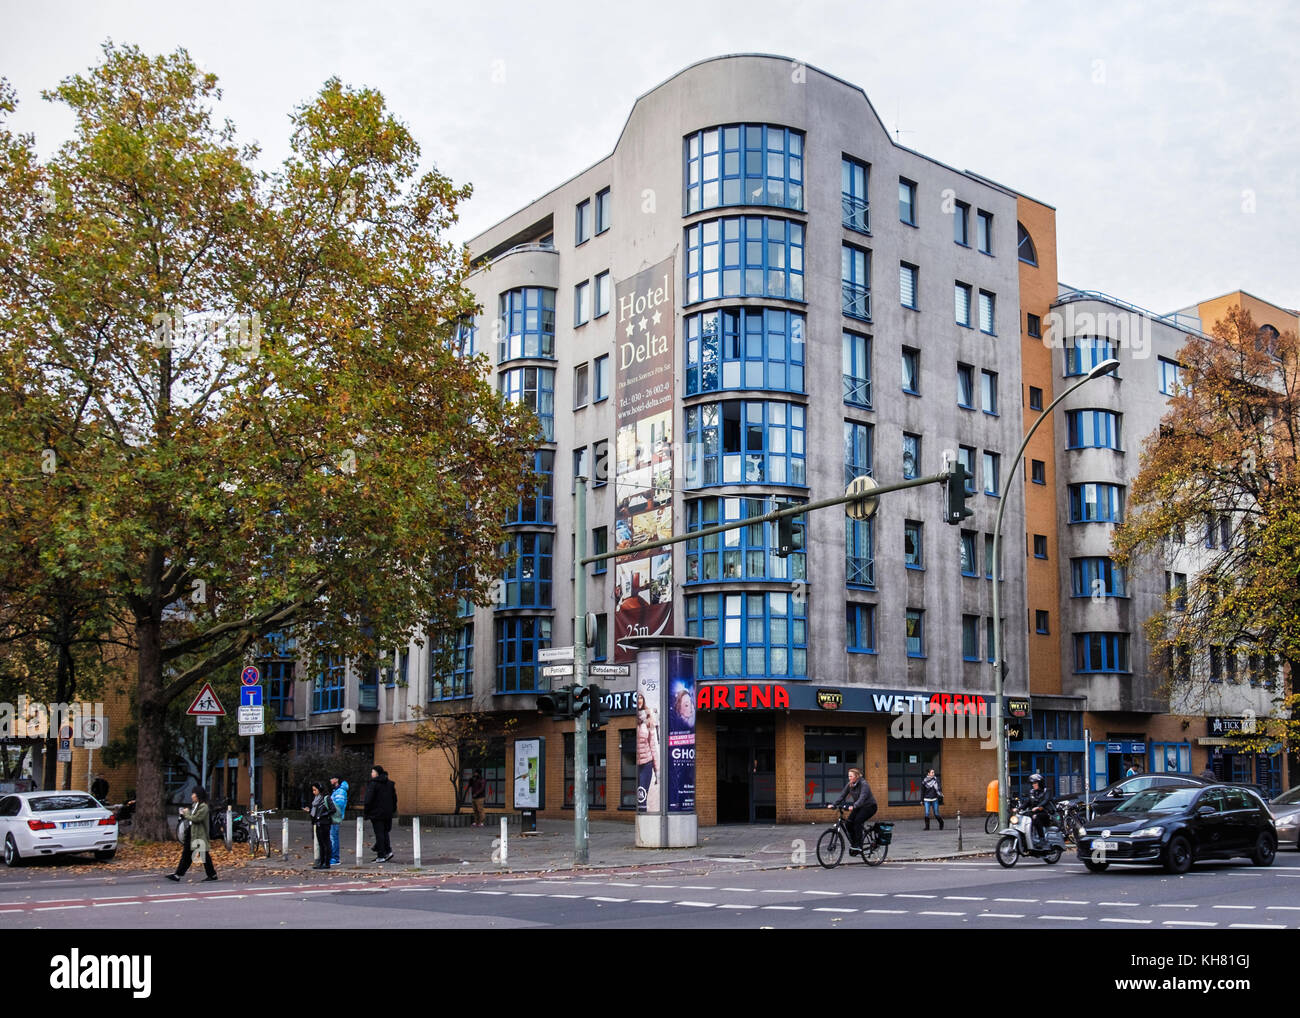 Berlin-Mitte Tiergarten.Berlin Street view,Arena Sports Bar building  on corner of Potsdamer street & Pohl Street - Stock Image